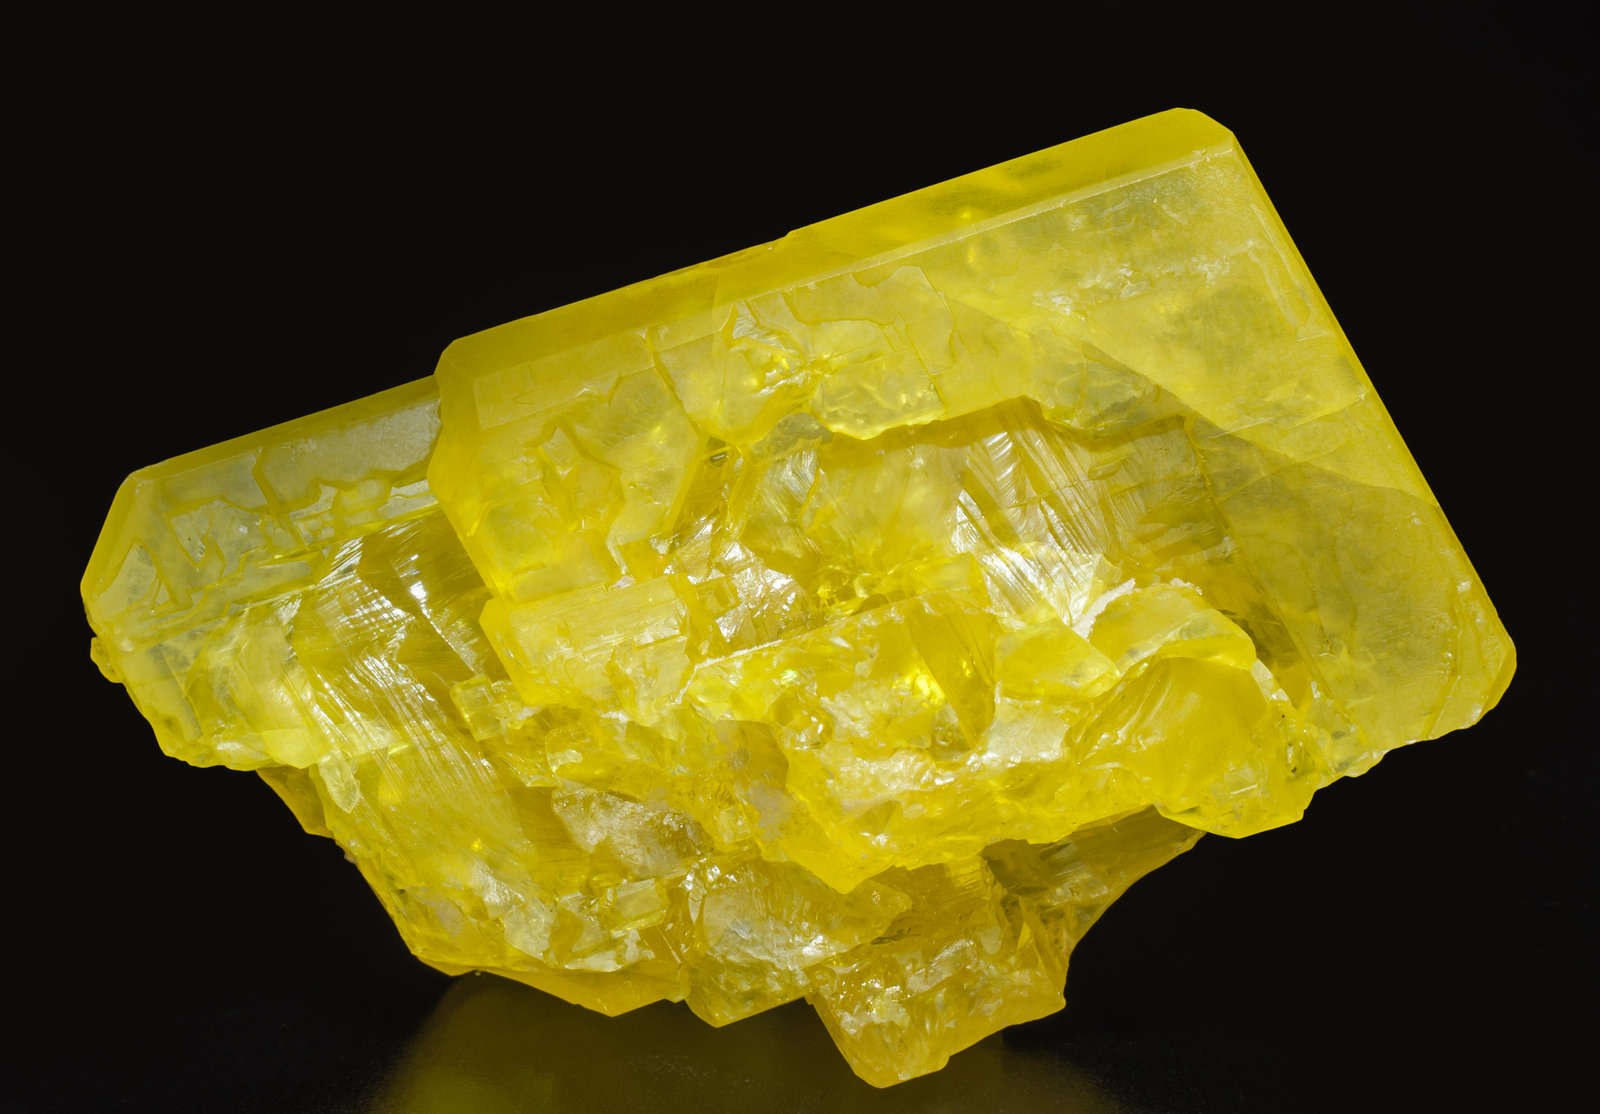 specimens/s_imagesAJ0/Sulfur-AT30AJ0r.jpg